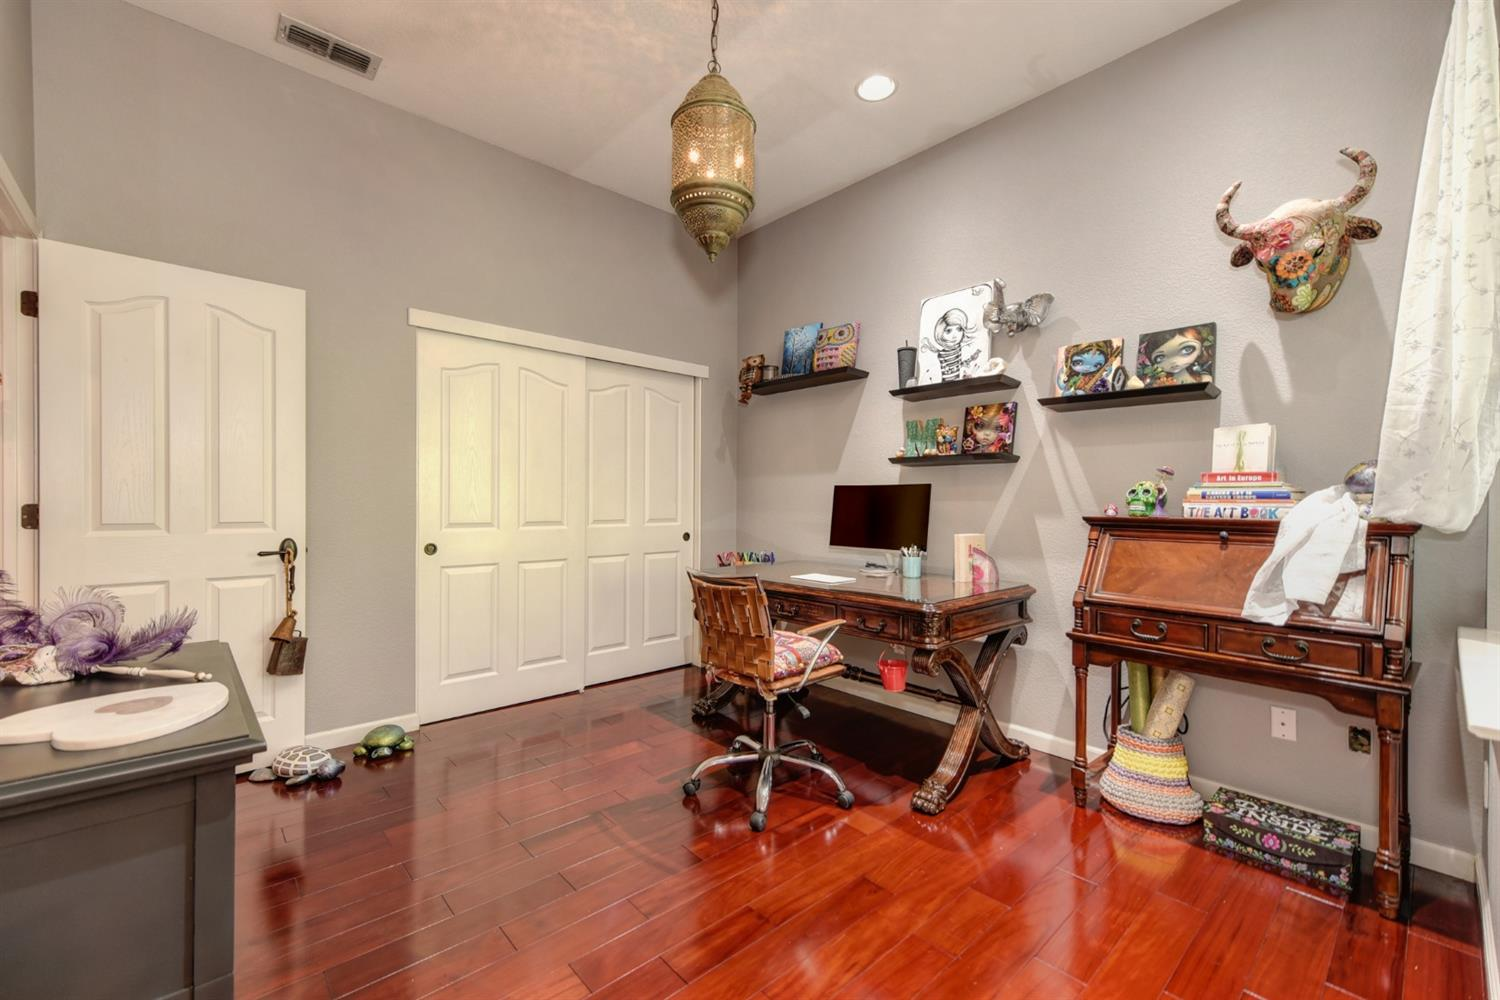 Photo 3 for Listing #221120681